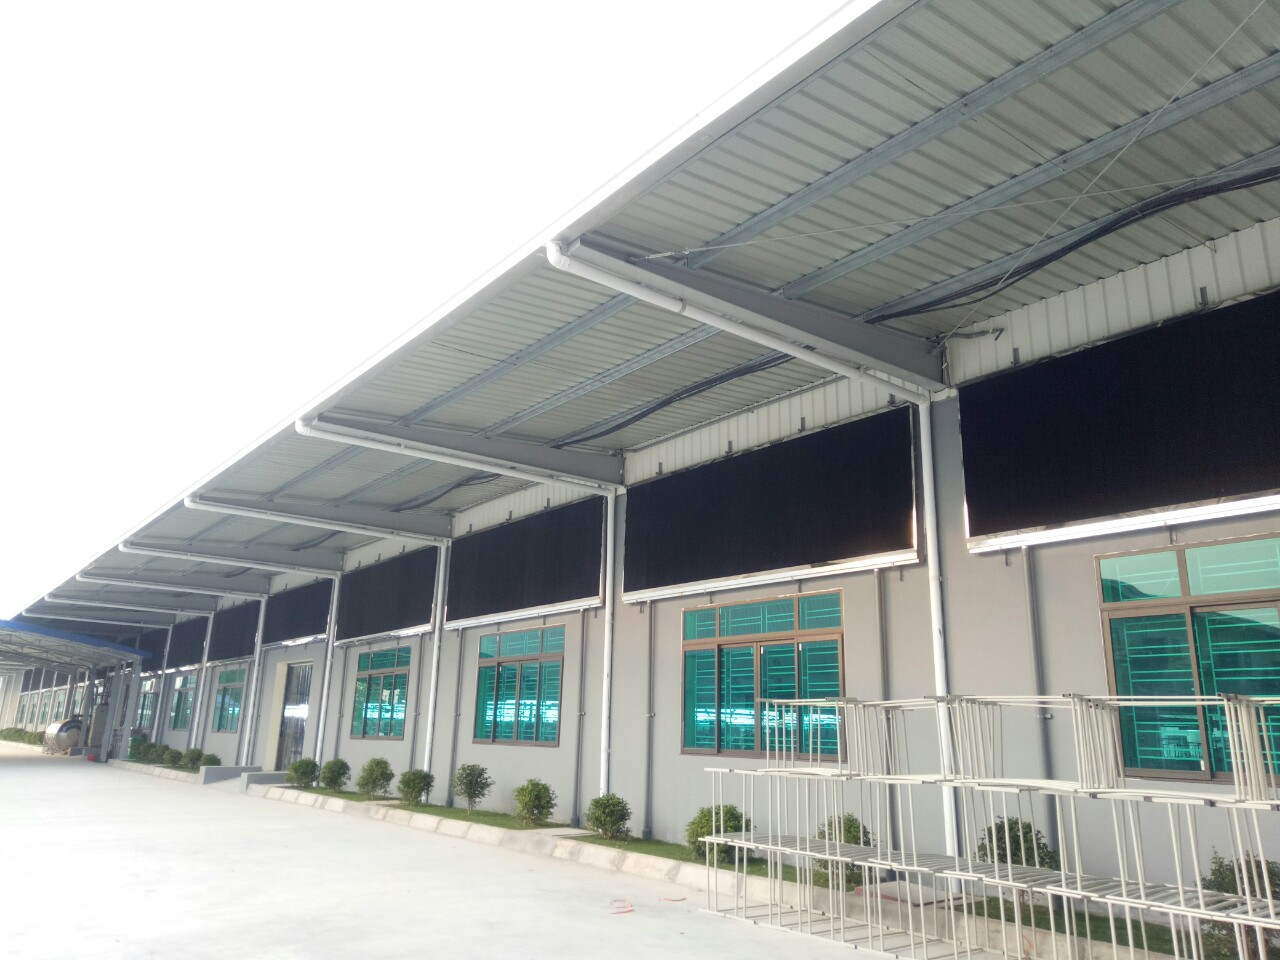 khung_tam_cooling_pad